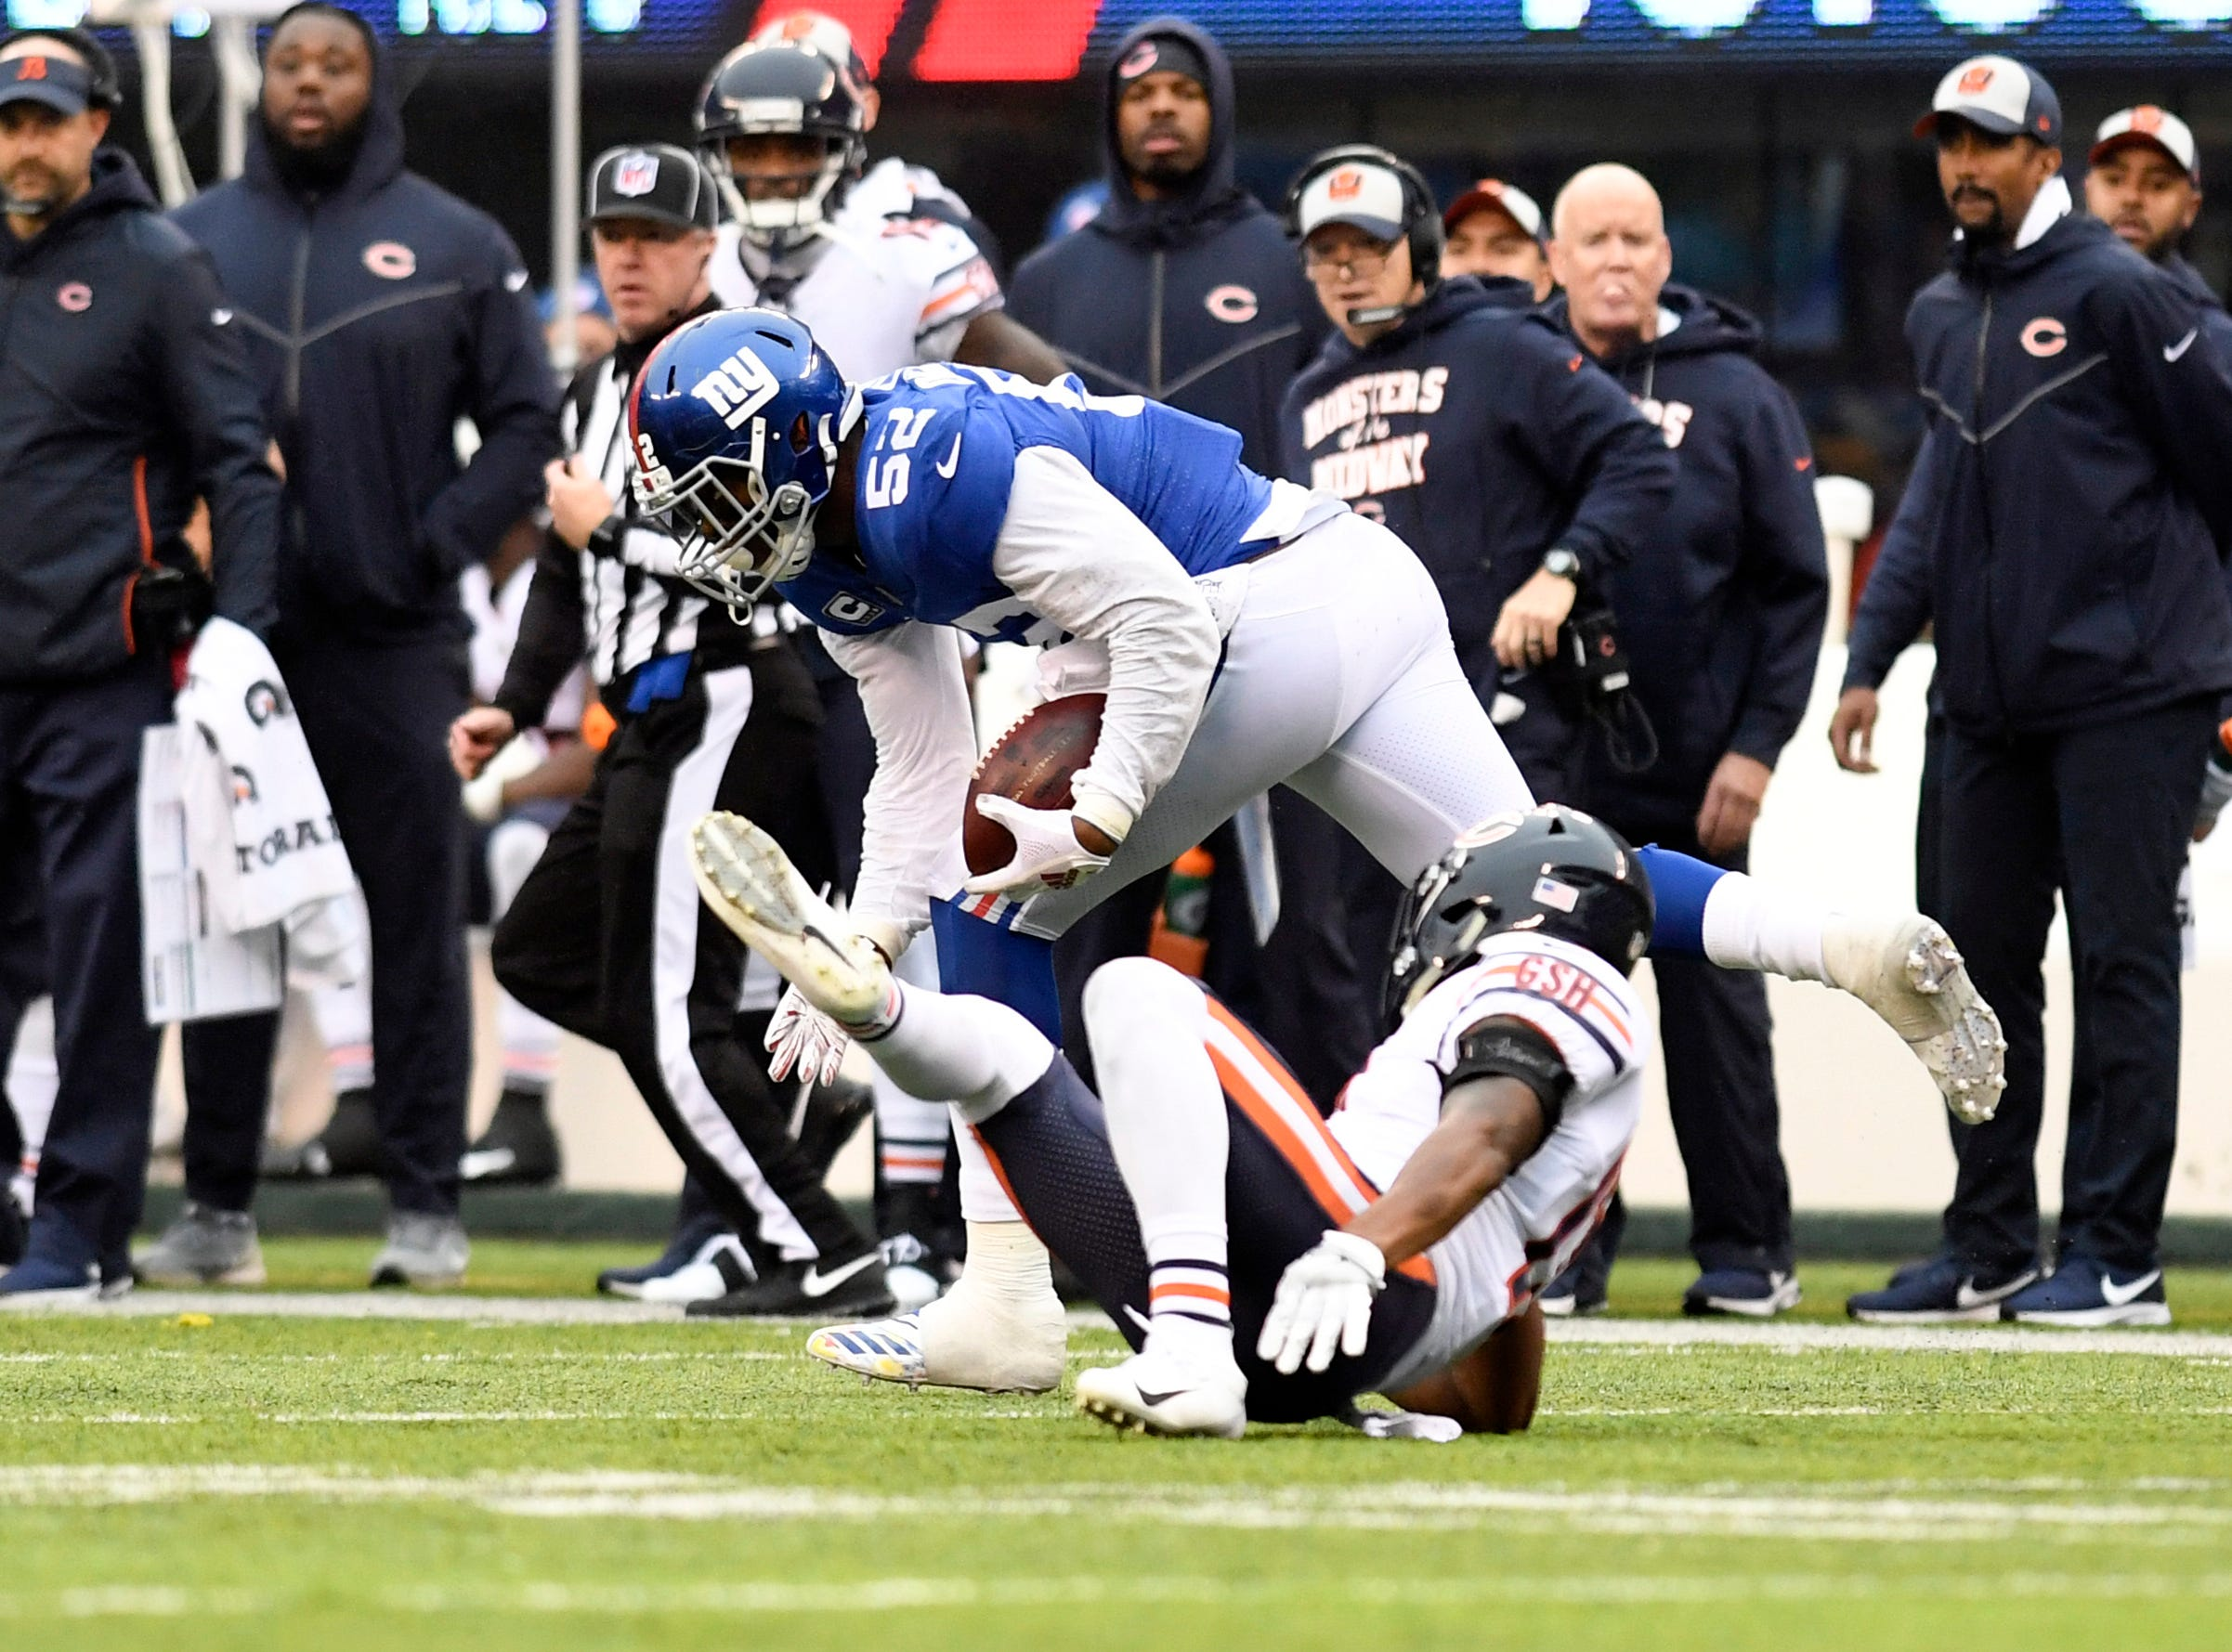 New York Giants linebacker Alec Ogletree (52) has his second interception in the first half. The New York Giants face the Chicago Bears on Sunday, Dec. 2, 2018, in East Rutherford.